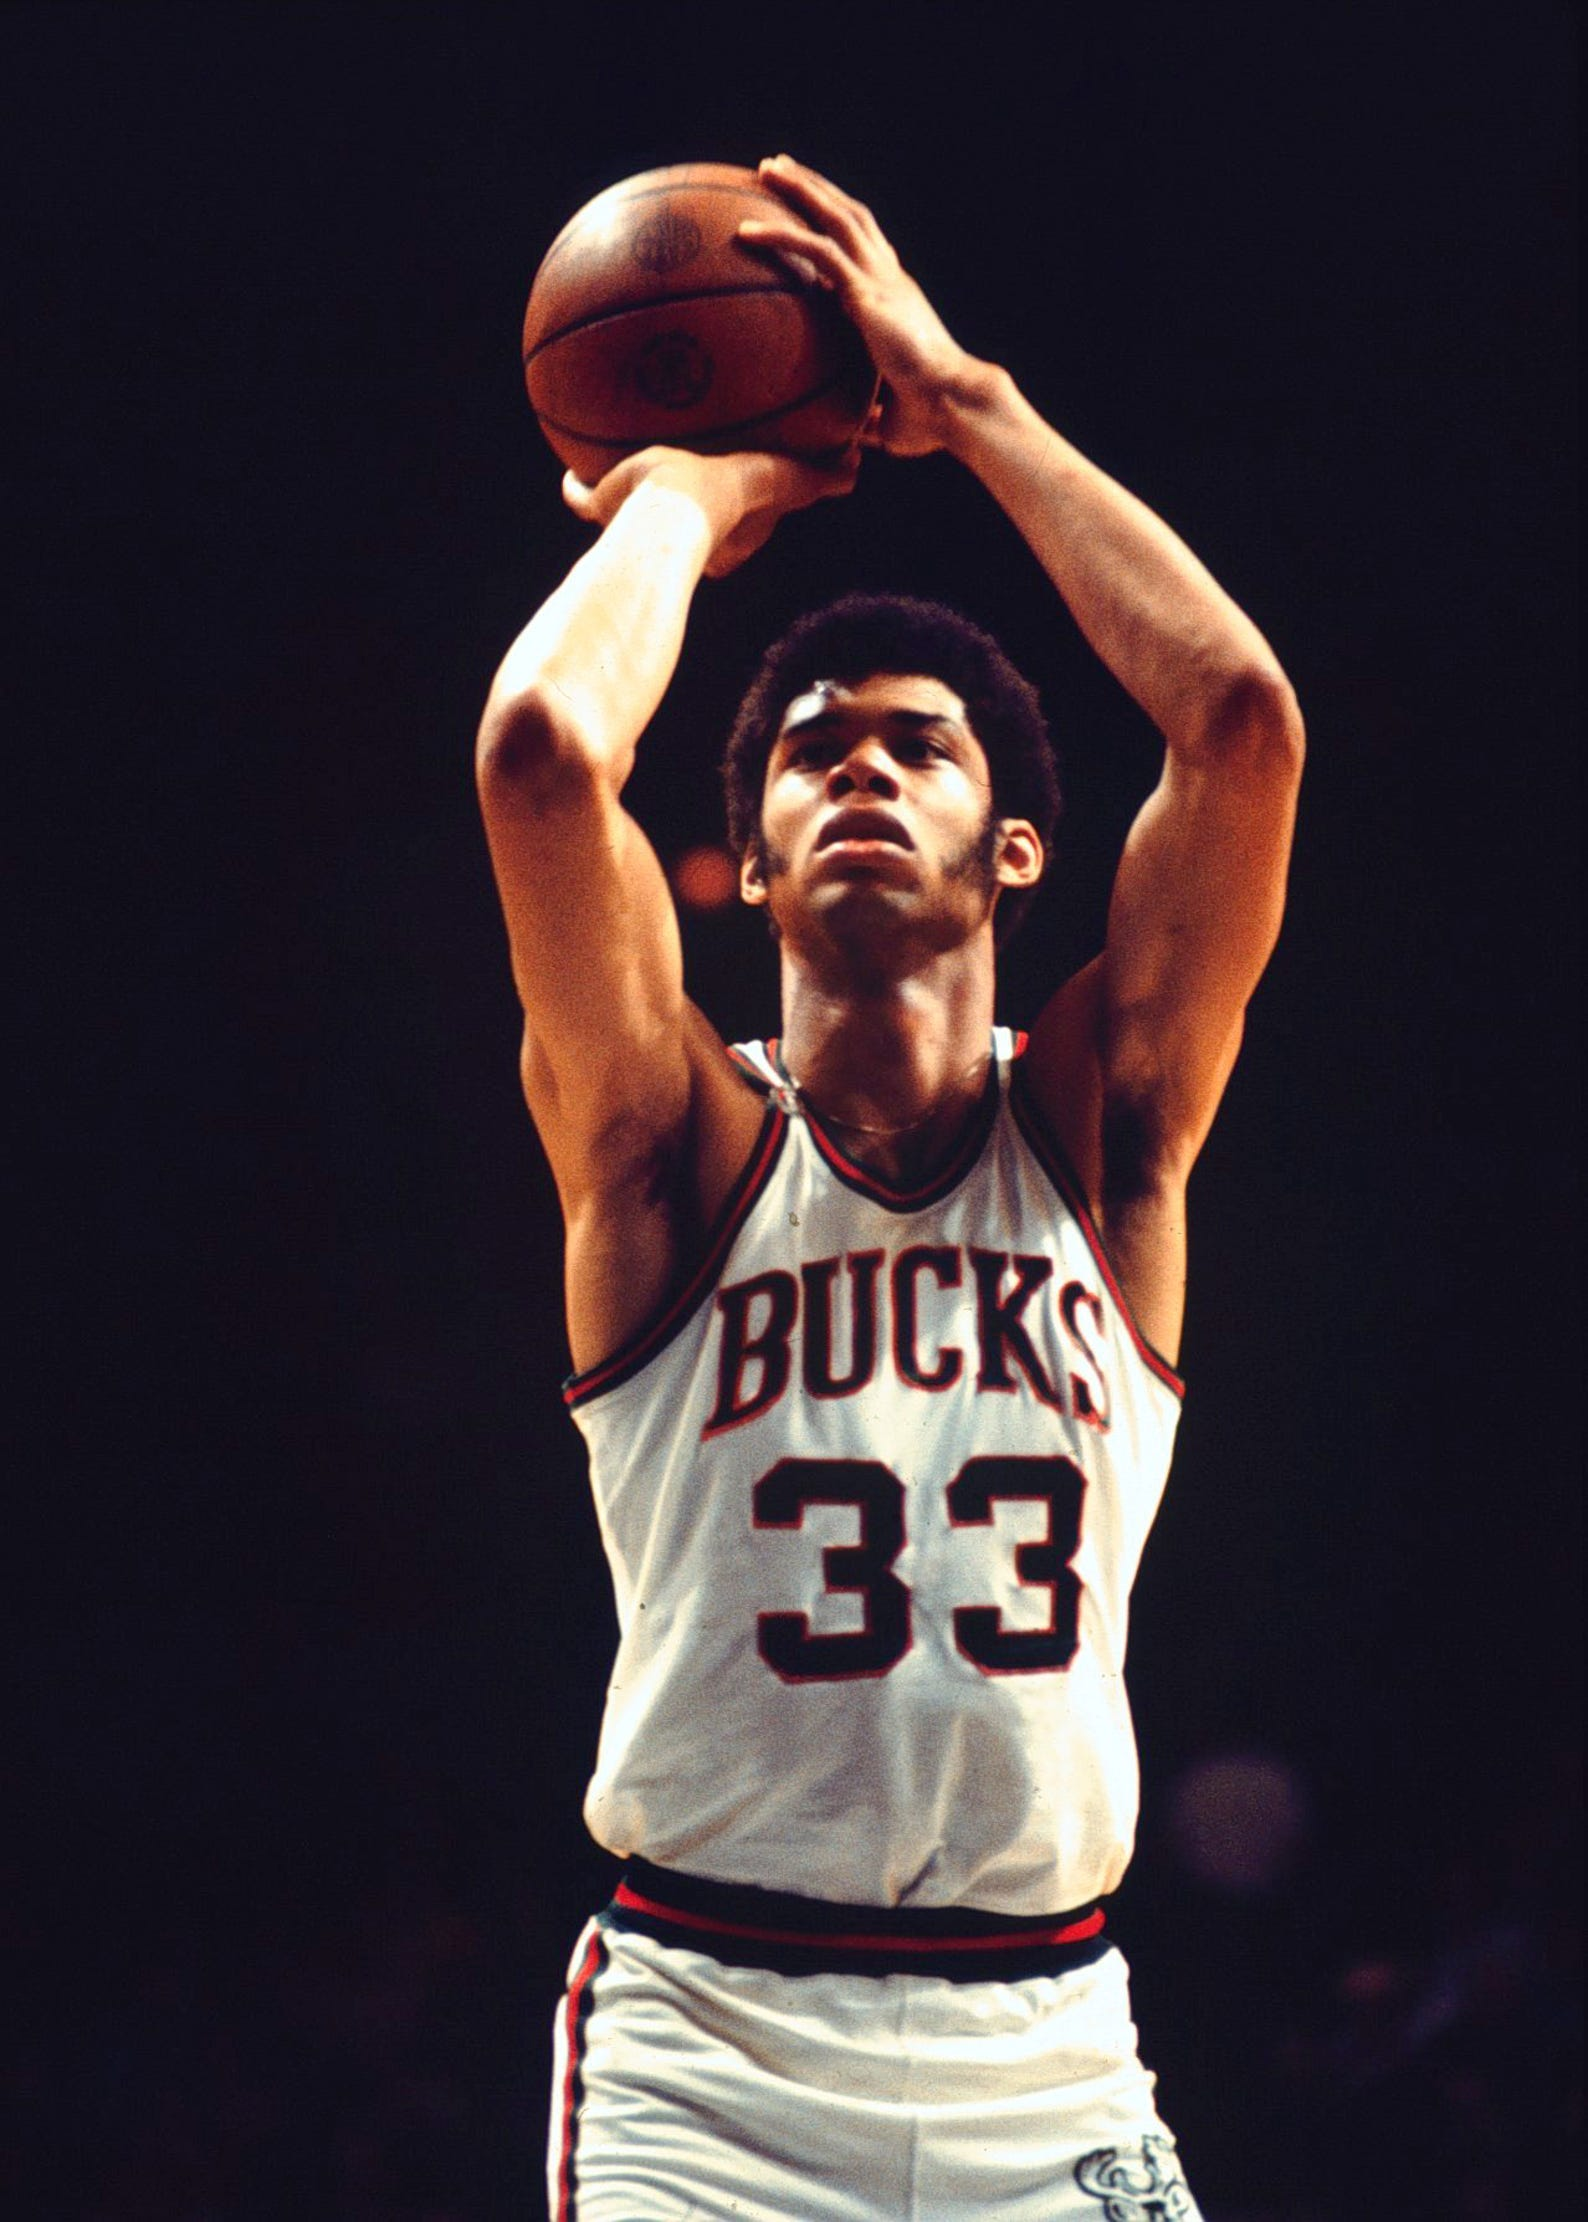 reputable site 42b18 33d81 20 photos that show Kareem Abdul-Jabbar making the Bucks a ...